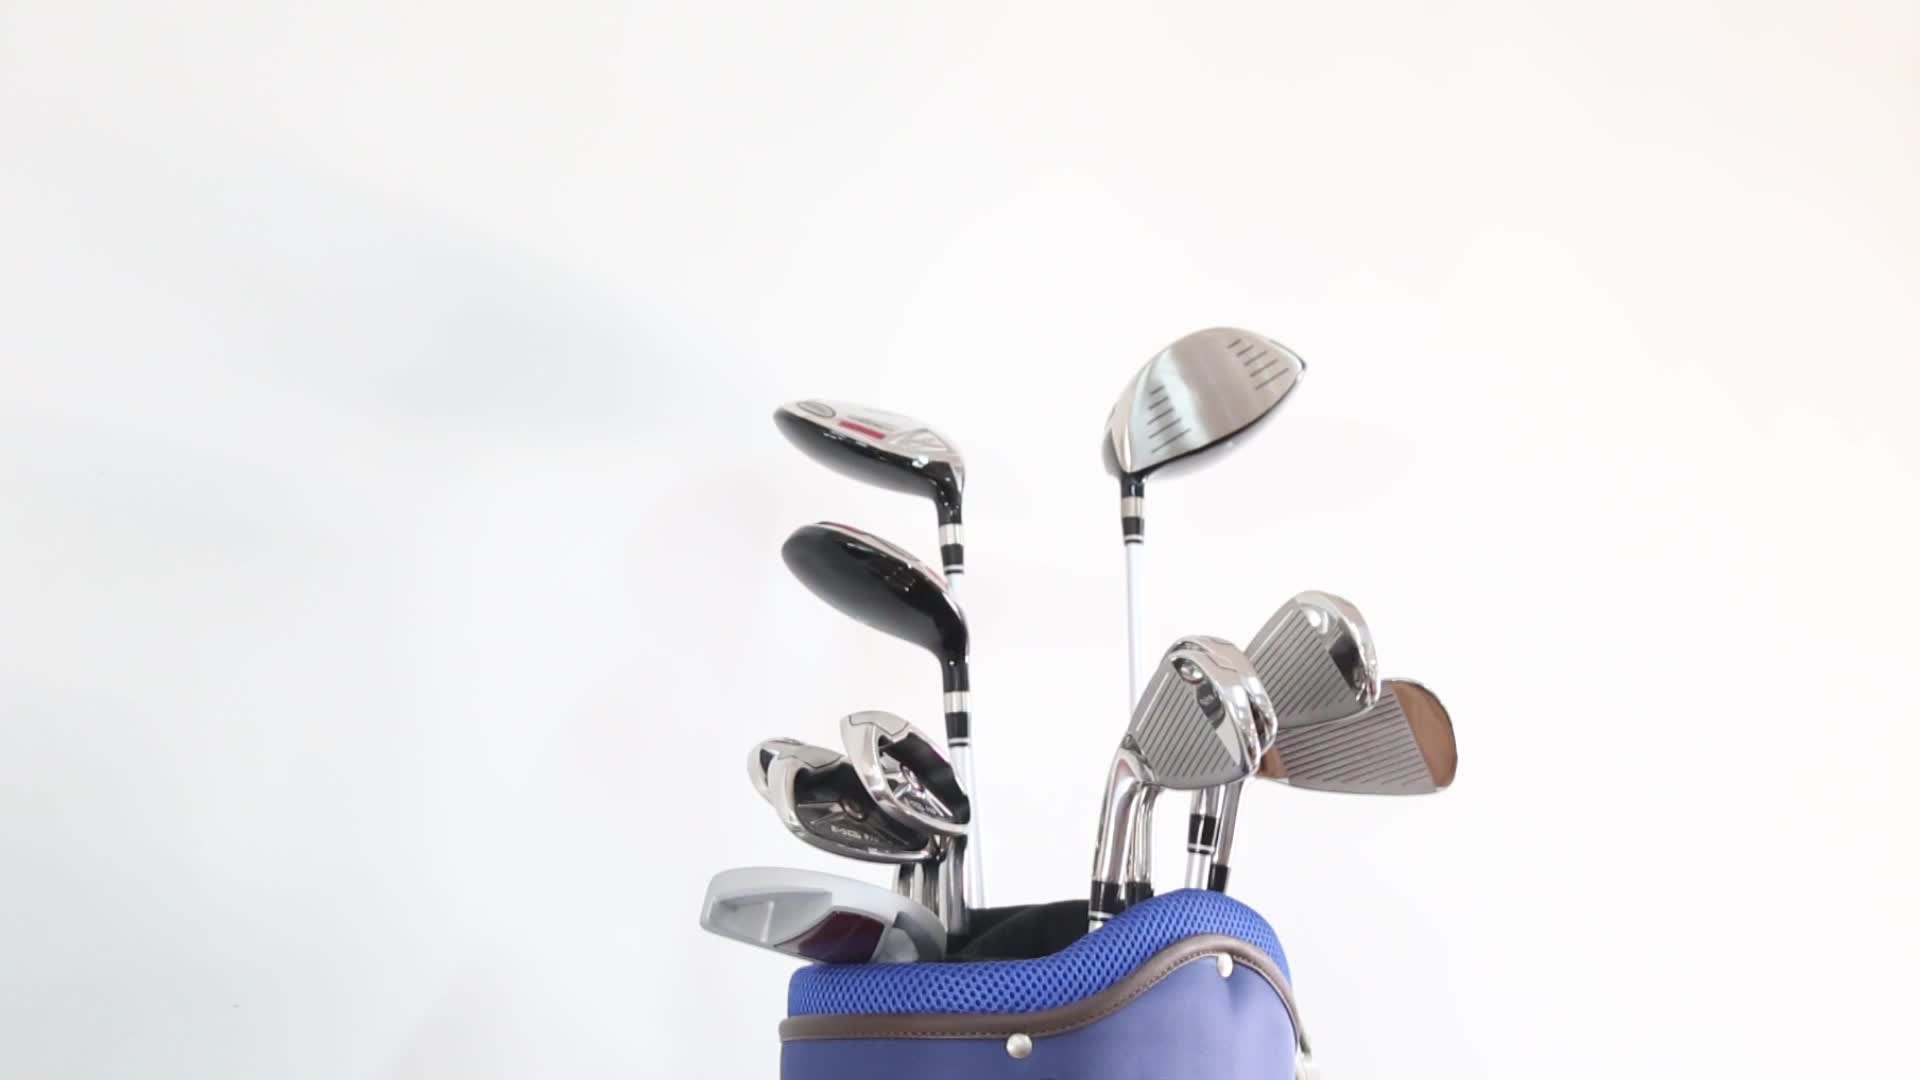 Power Max Golf Club, High Quality Golf Club/Brand Golf Club Full Set